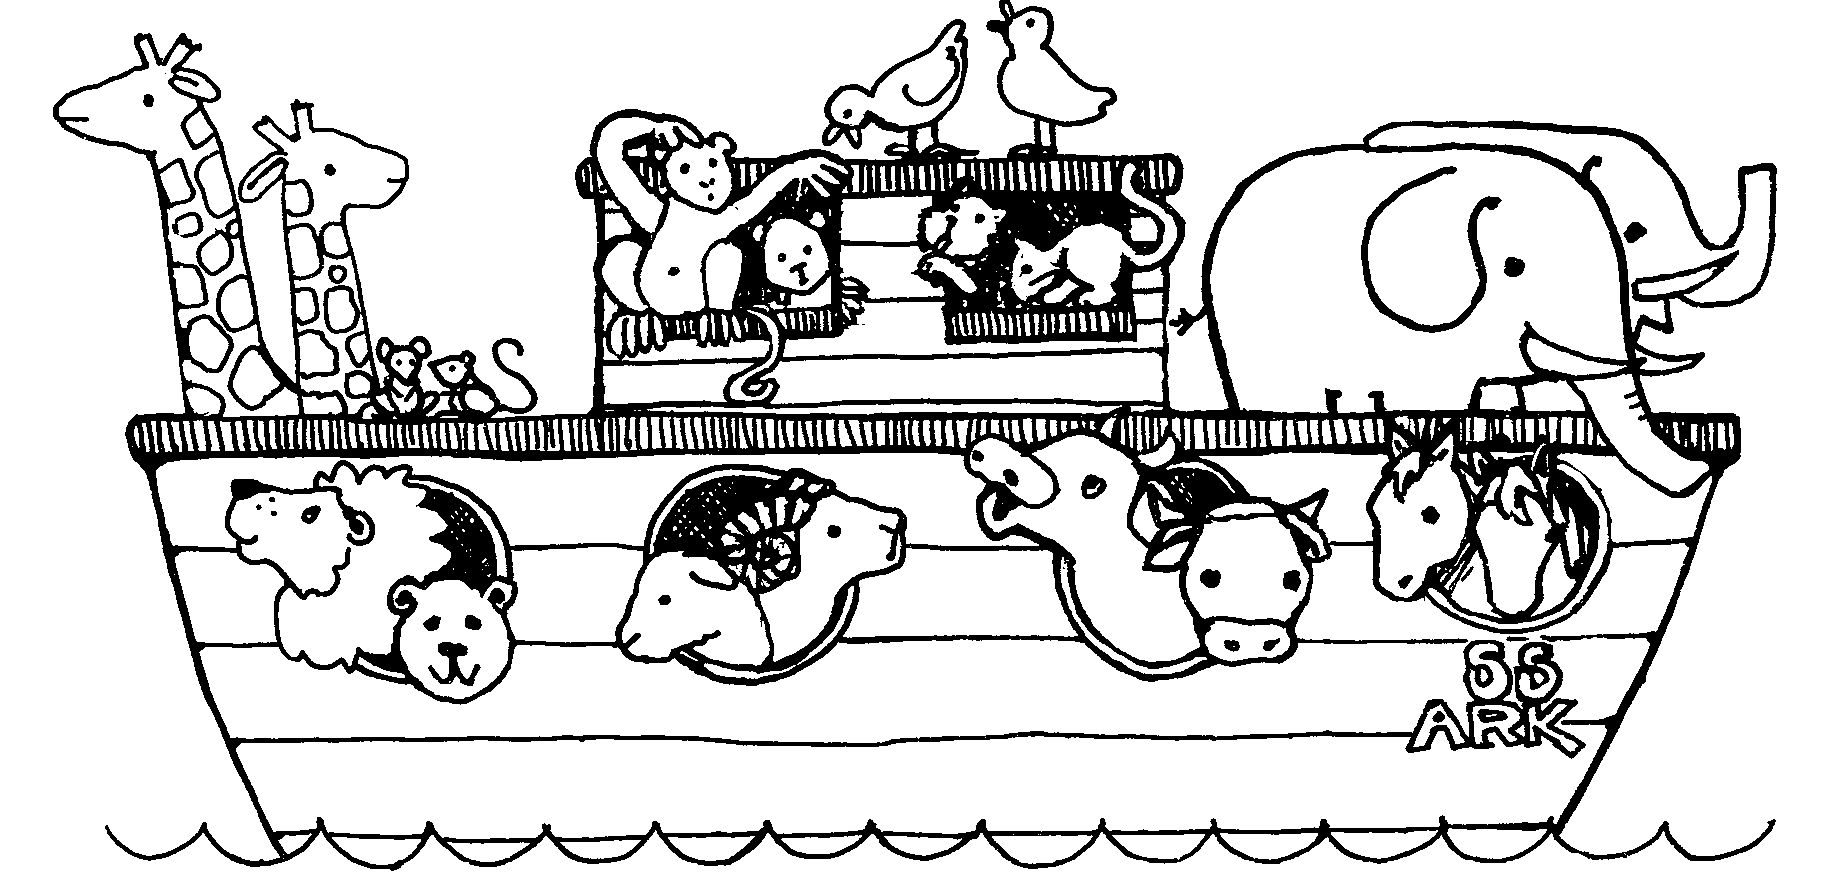 Free Coloring Pages Download Noahs Ark Page 02 Kid Stuff Pinterest Sunday School Of